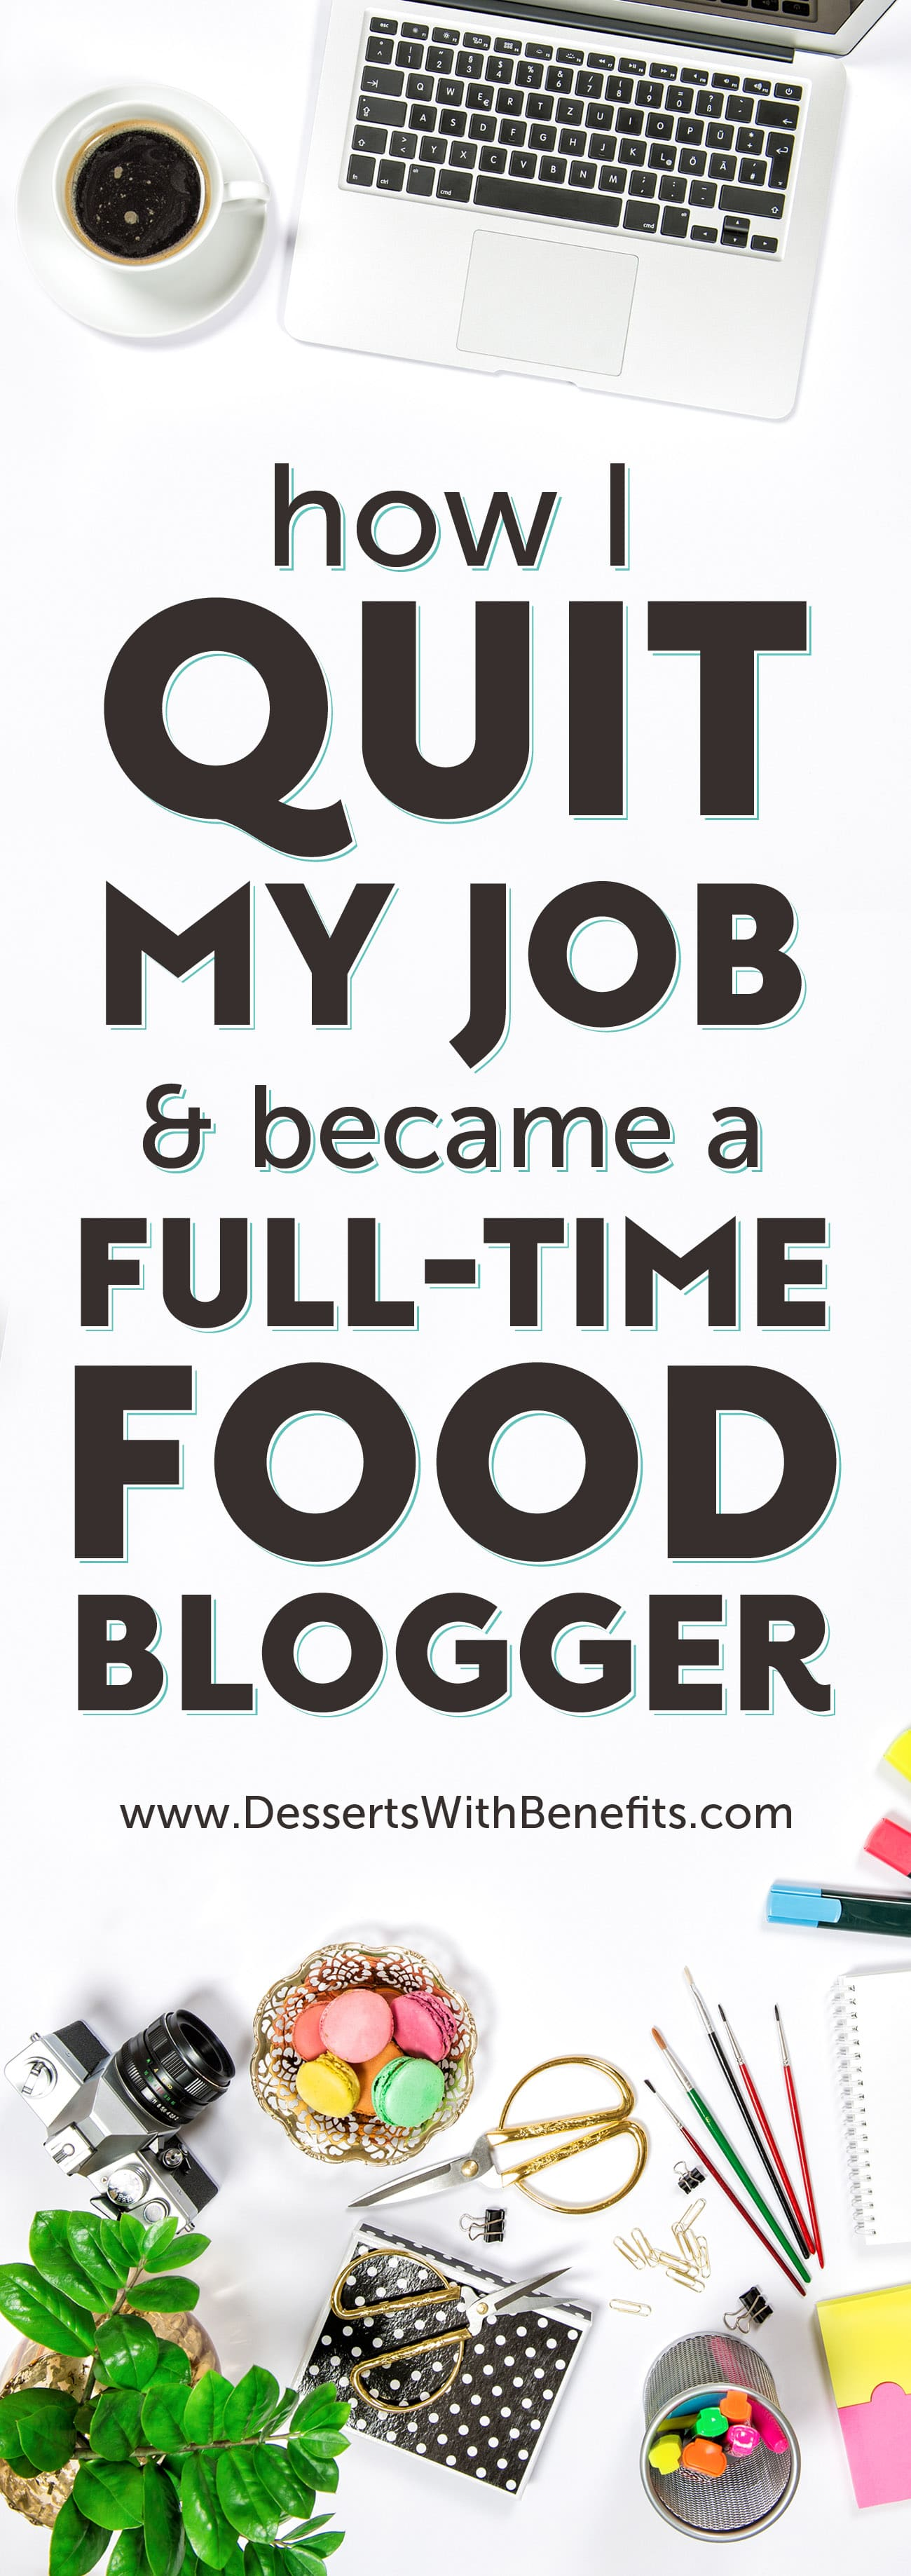 Full Time Blogging is a career? Oh yes. Here is the ULTIMATE guide to food blogging -- tools, resources, and helpful hints and tips that allowed me to quit my day job and turn my blog from a side hustle to my main hustle! Healthy Dessert Recipes at the Desserts With Benefits Blog (www.DessertsWithBenefits.com)